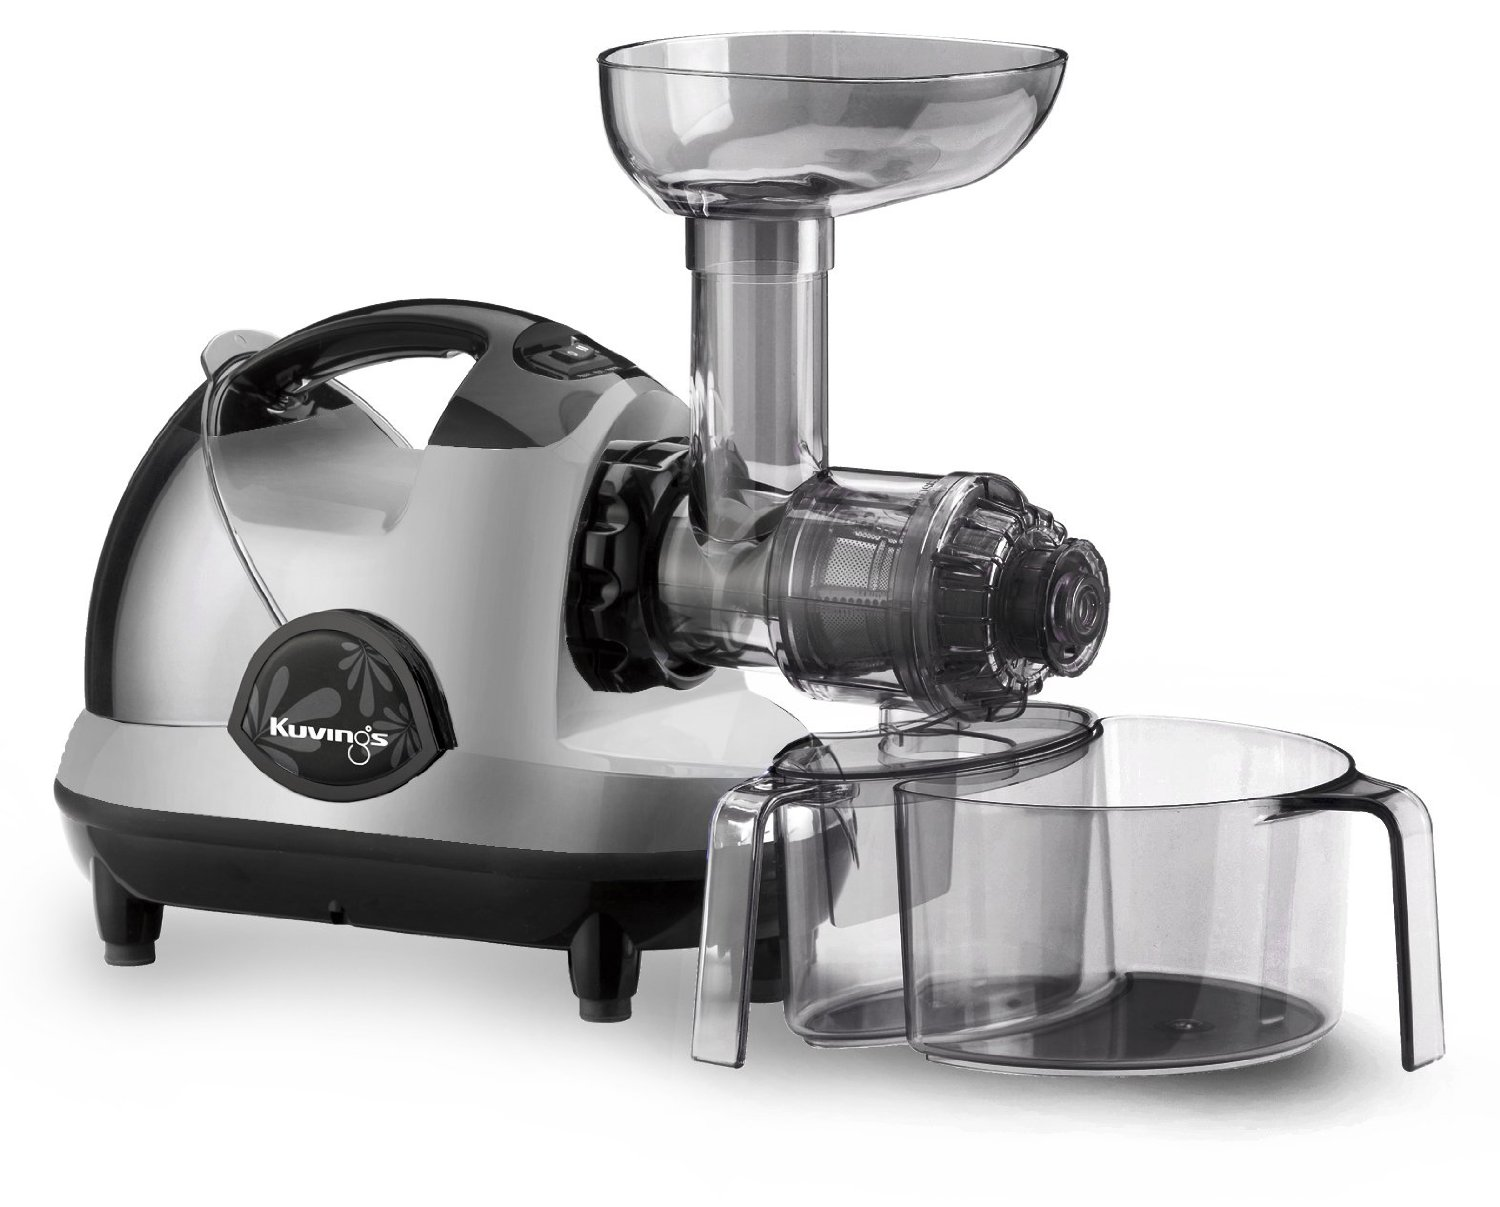 Best Slow Extraction Juicer : Kuvings NJE3580U Masticating Slow Juicer